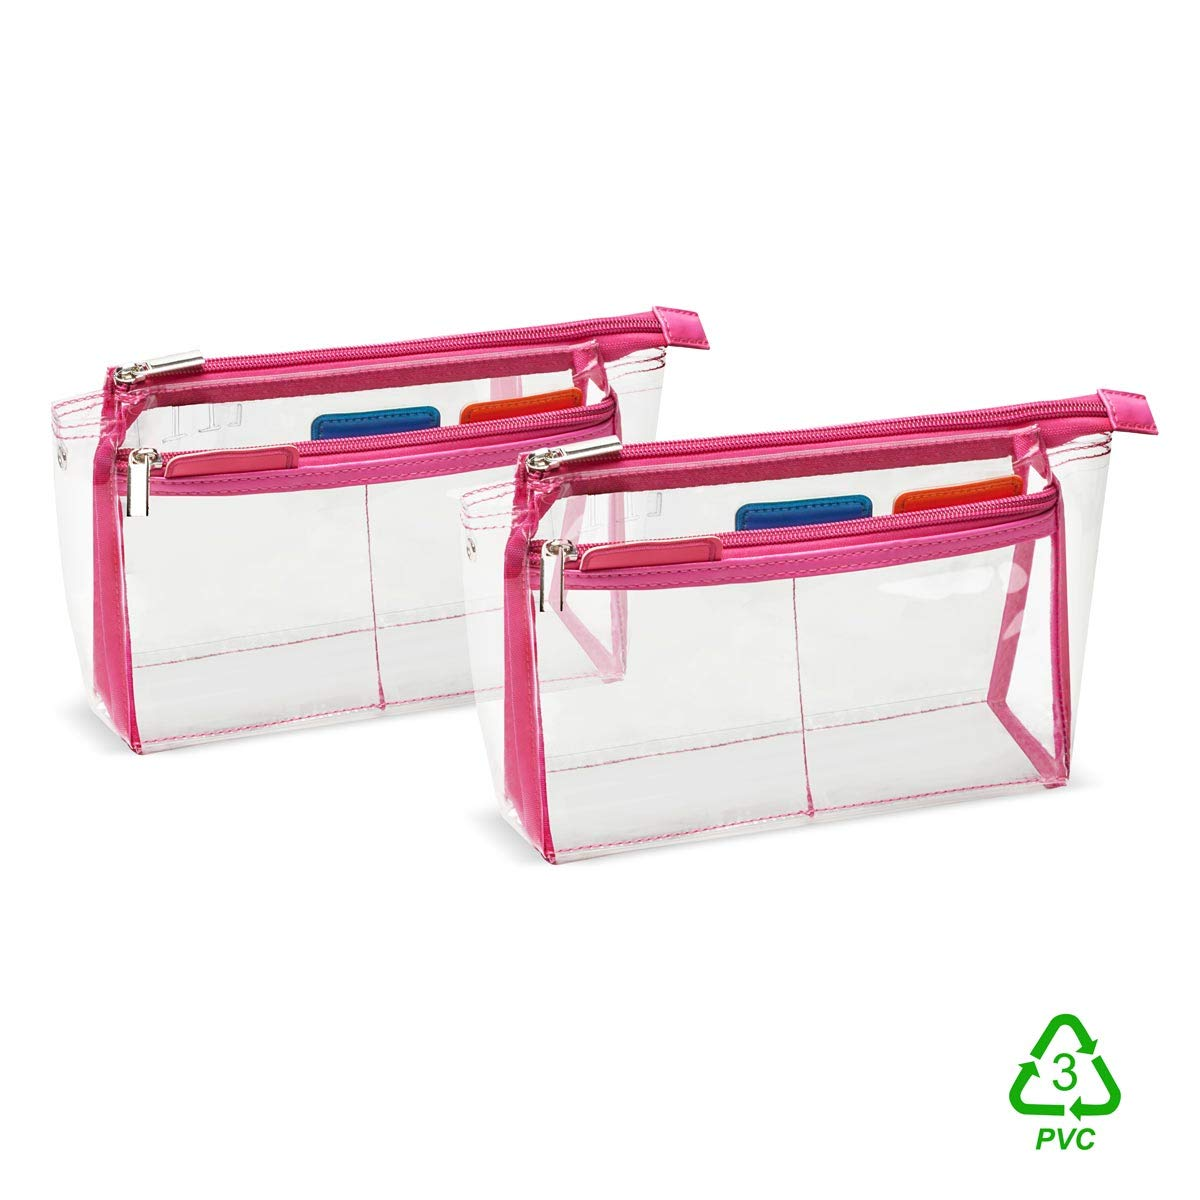 2pcs HereVGo TSA Approved Travel Makeup Toiletry Bag Quart size 3-1-1 Carry On Bag Packing Organizer Clear Luggage Zipper Bag Passport Wallet Holder Airport Airline Compliant Accessories